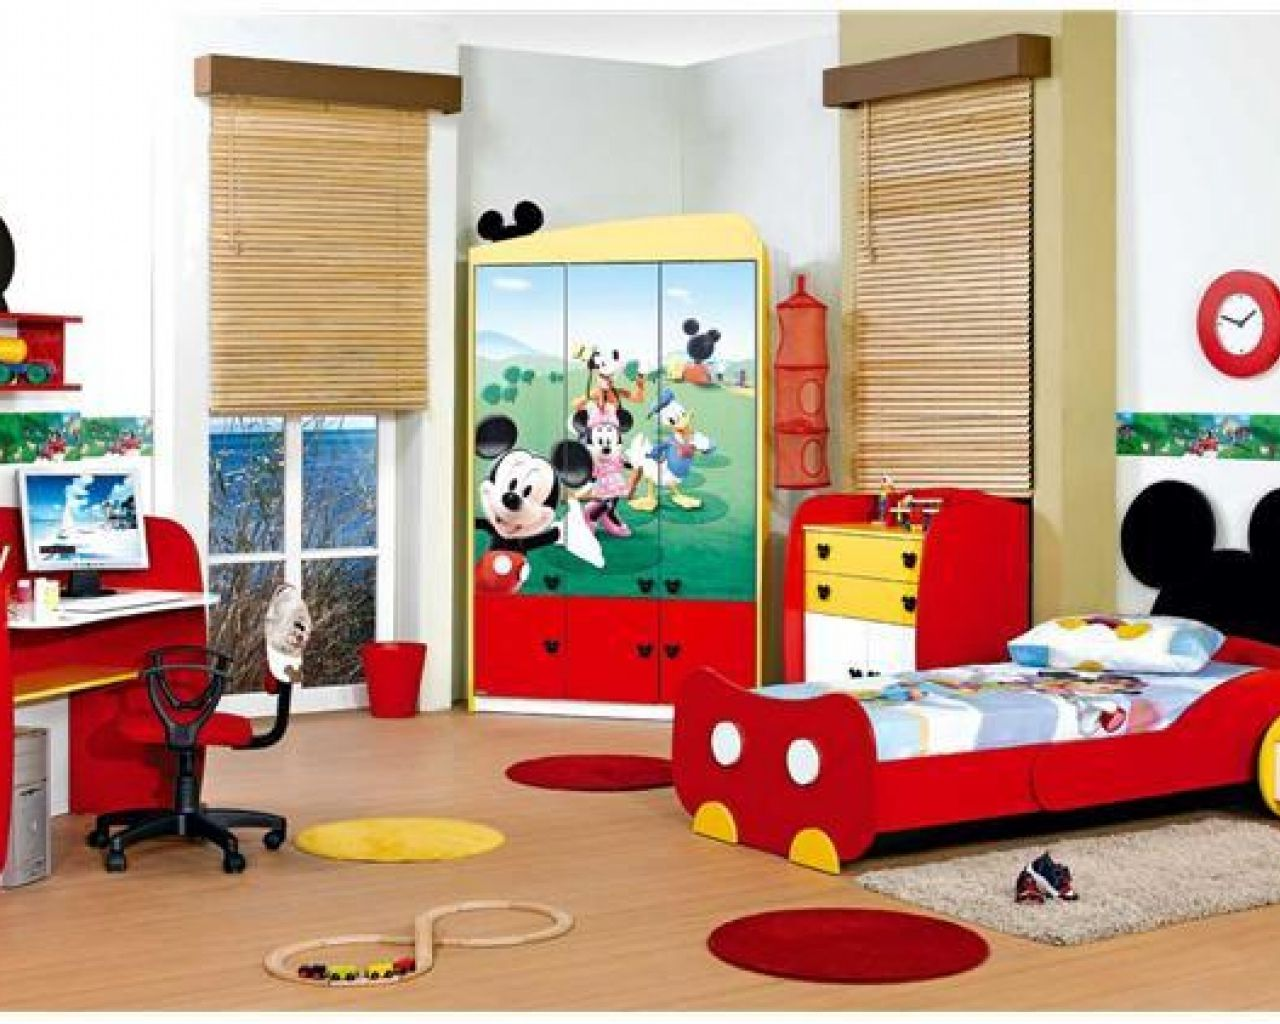 Mickey Mouse Bedroom Set Ideas About Remodel Home Interior Design